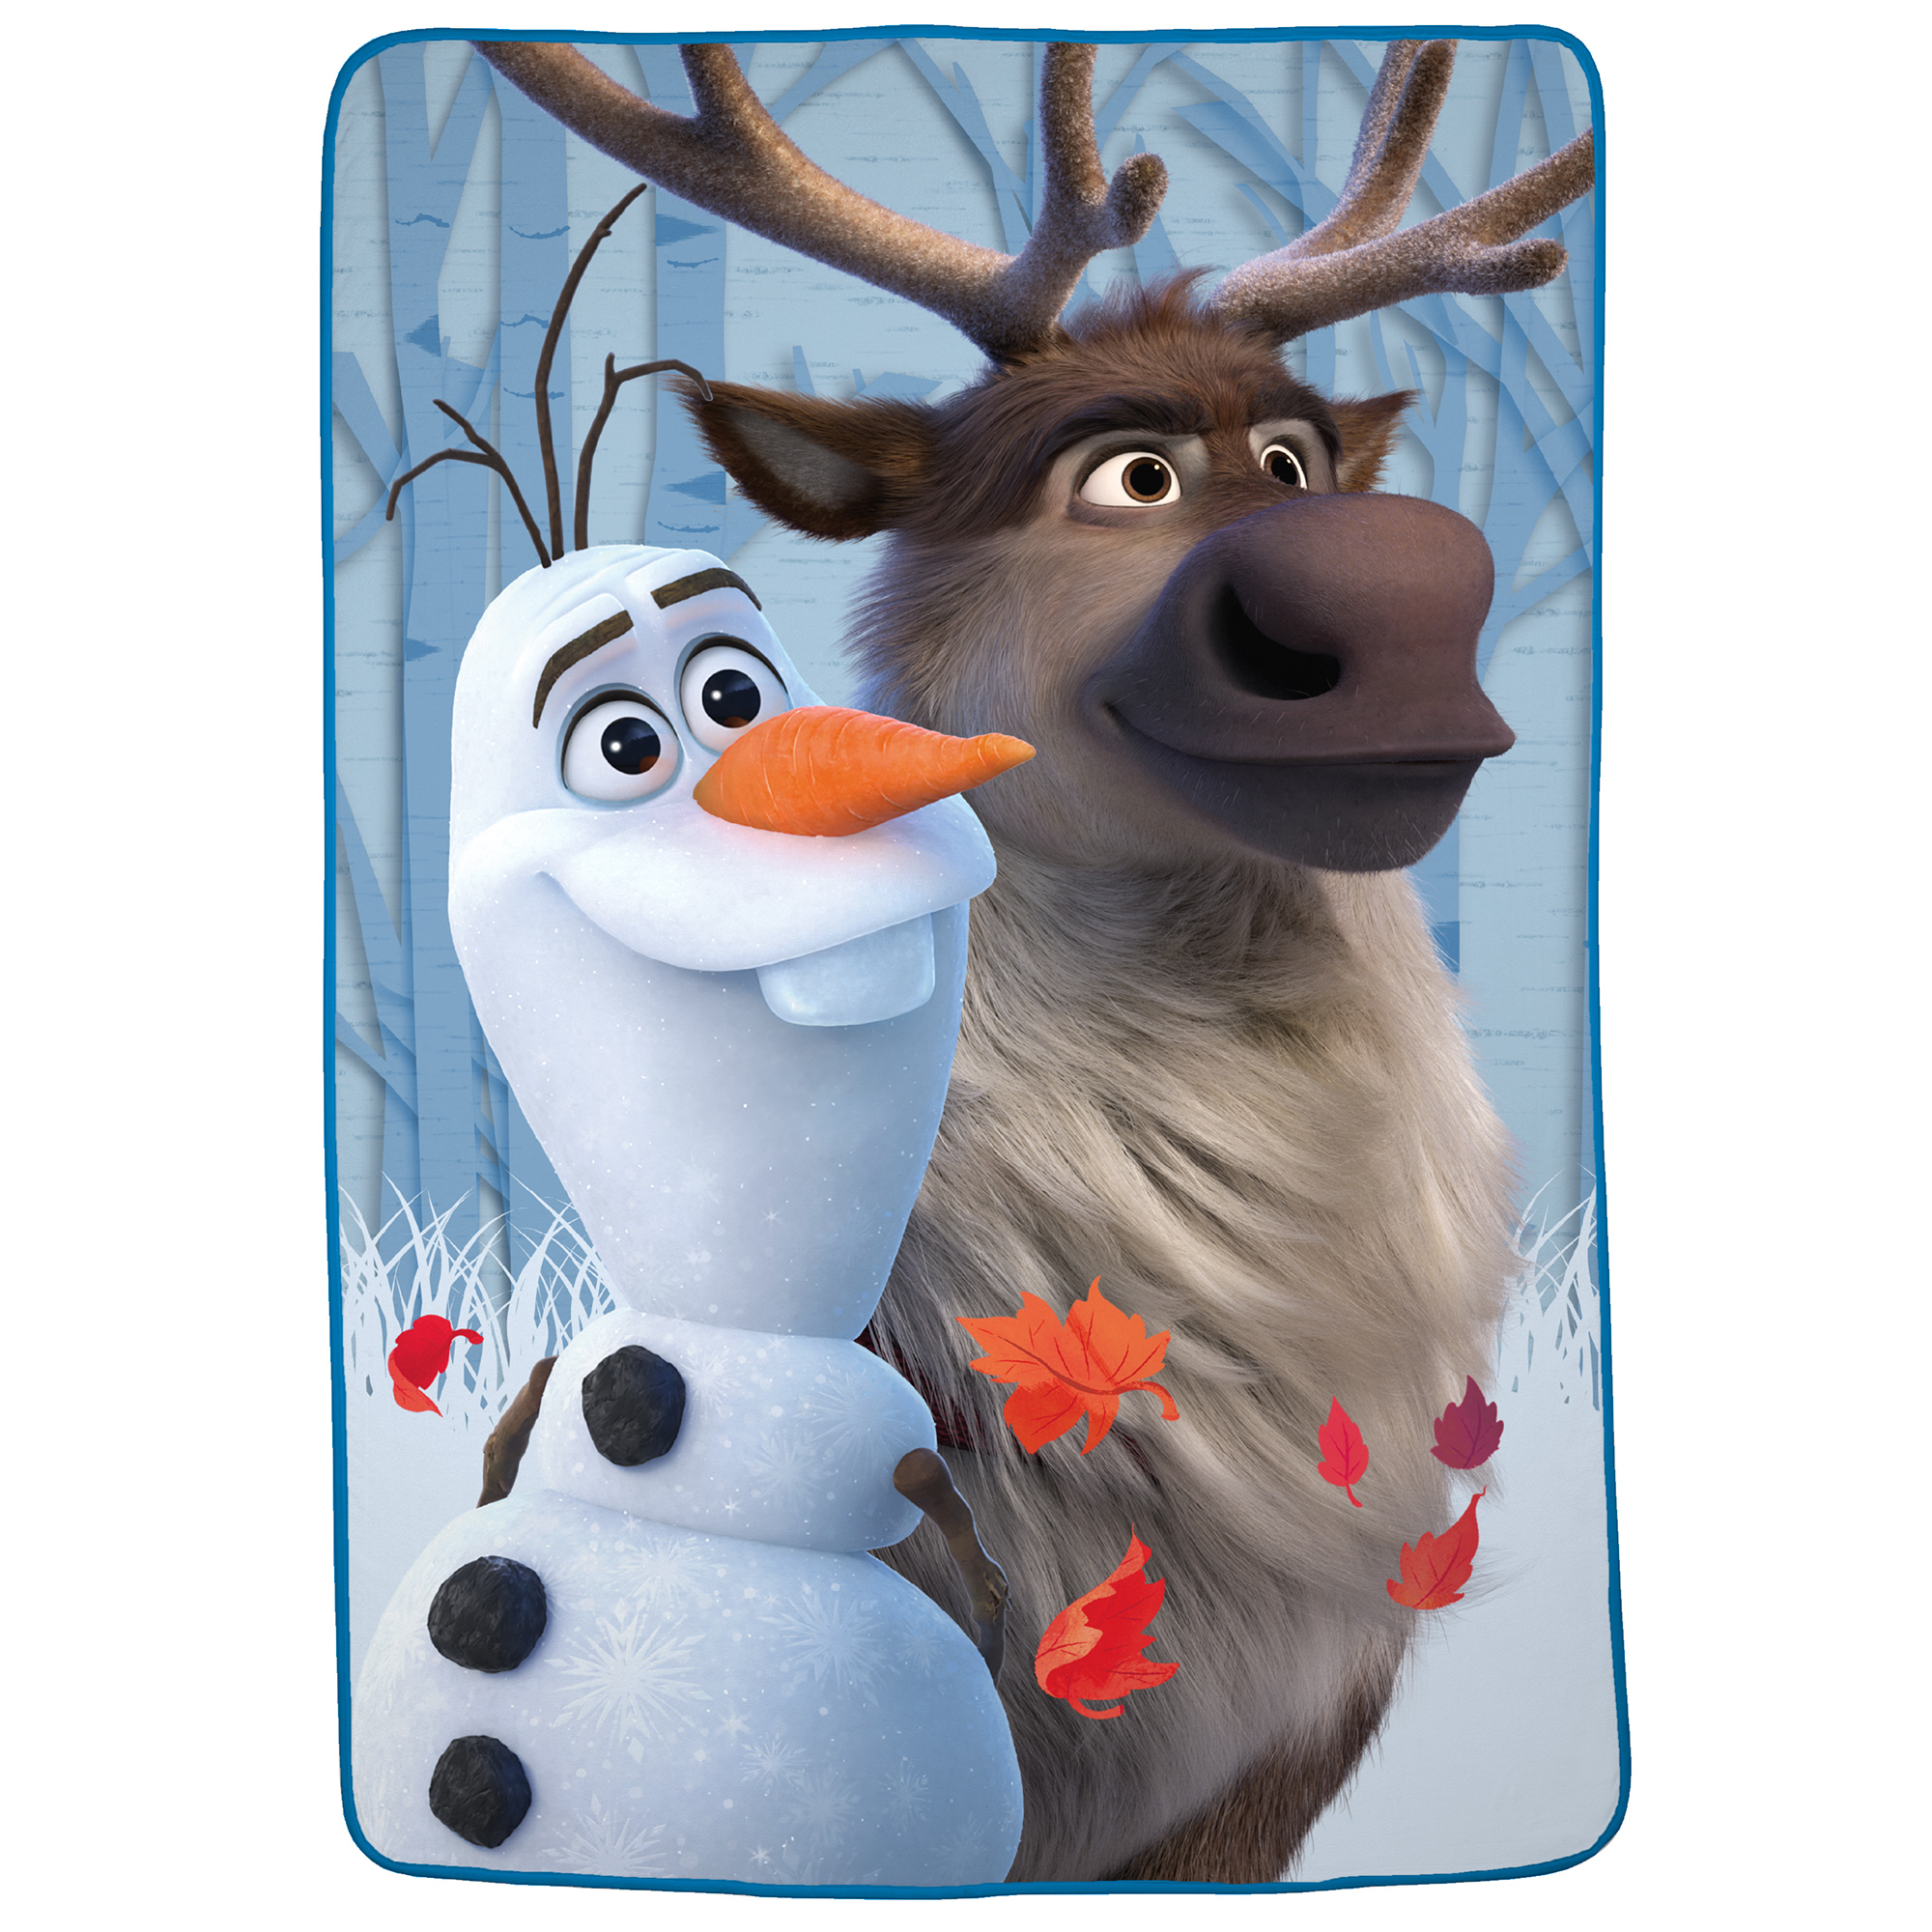 Reduced Disneys Frozen Olaf minky blanket  only 1 available